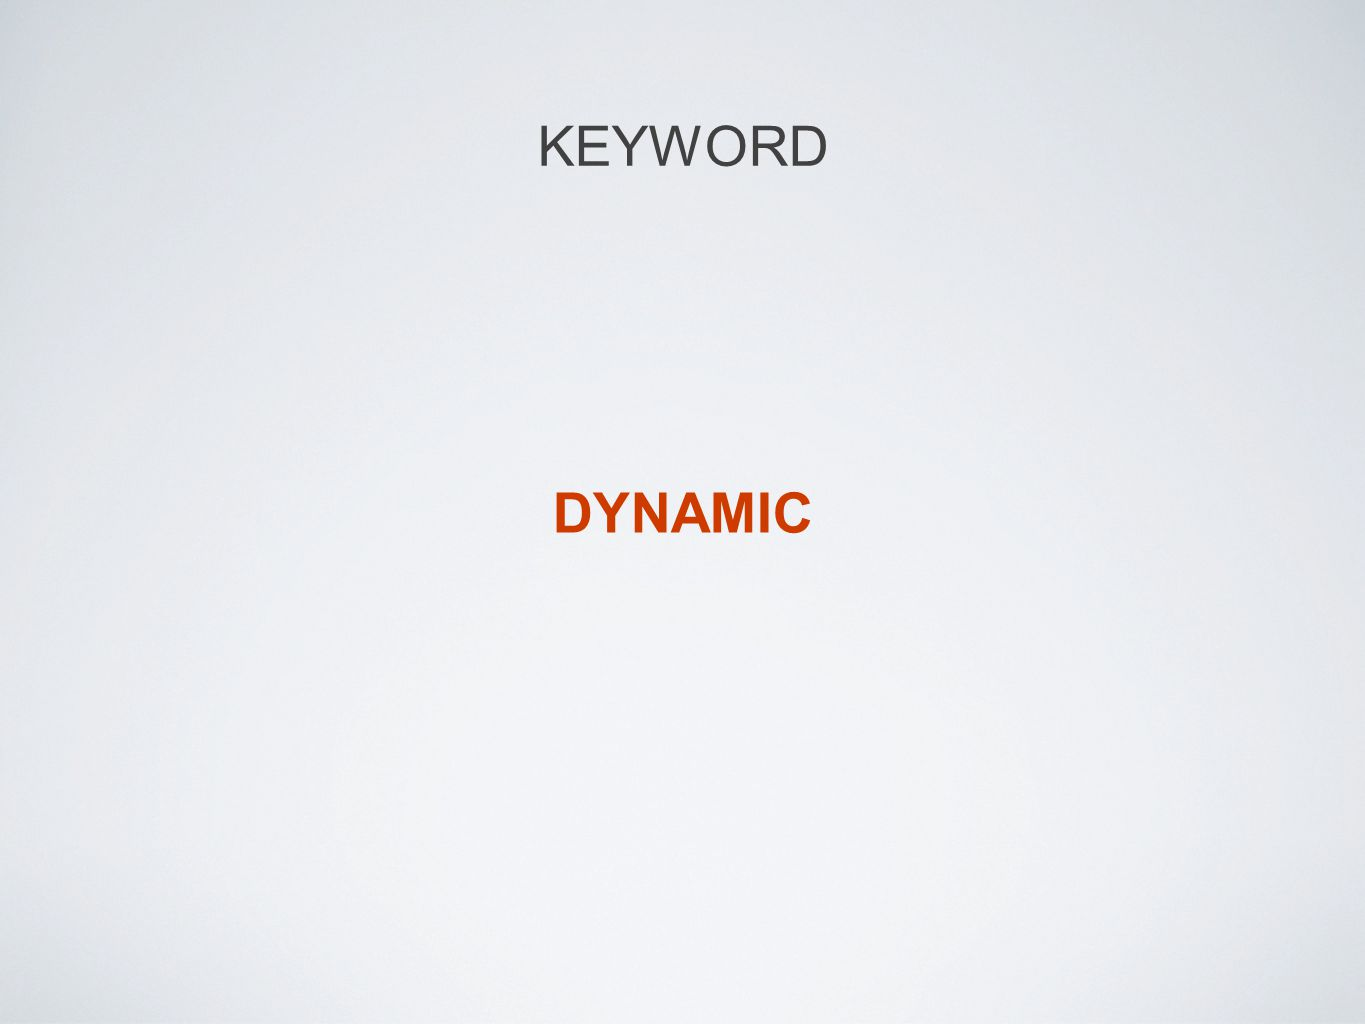 KEYWORD DYNAMIC